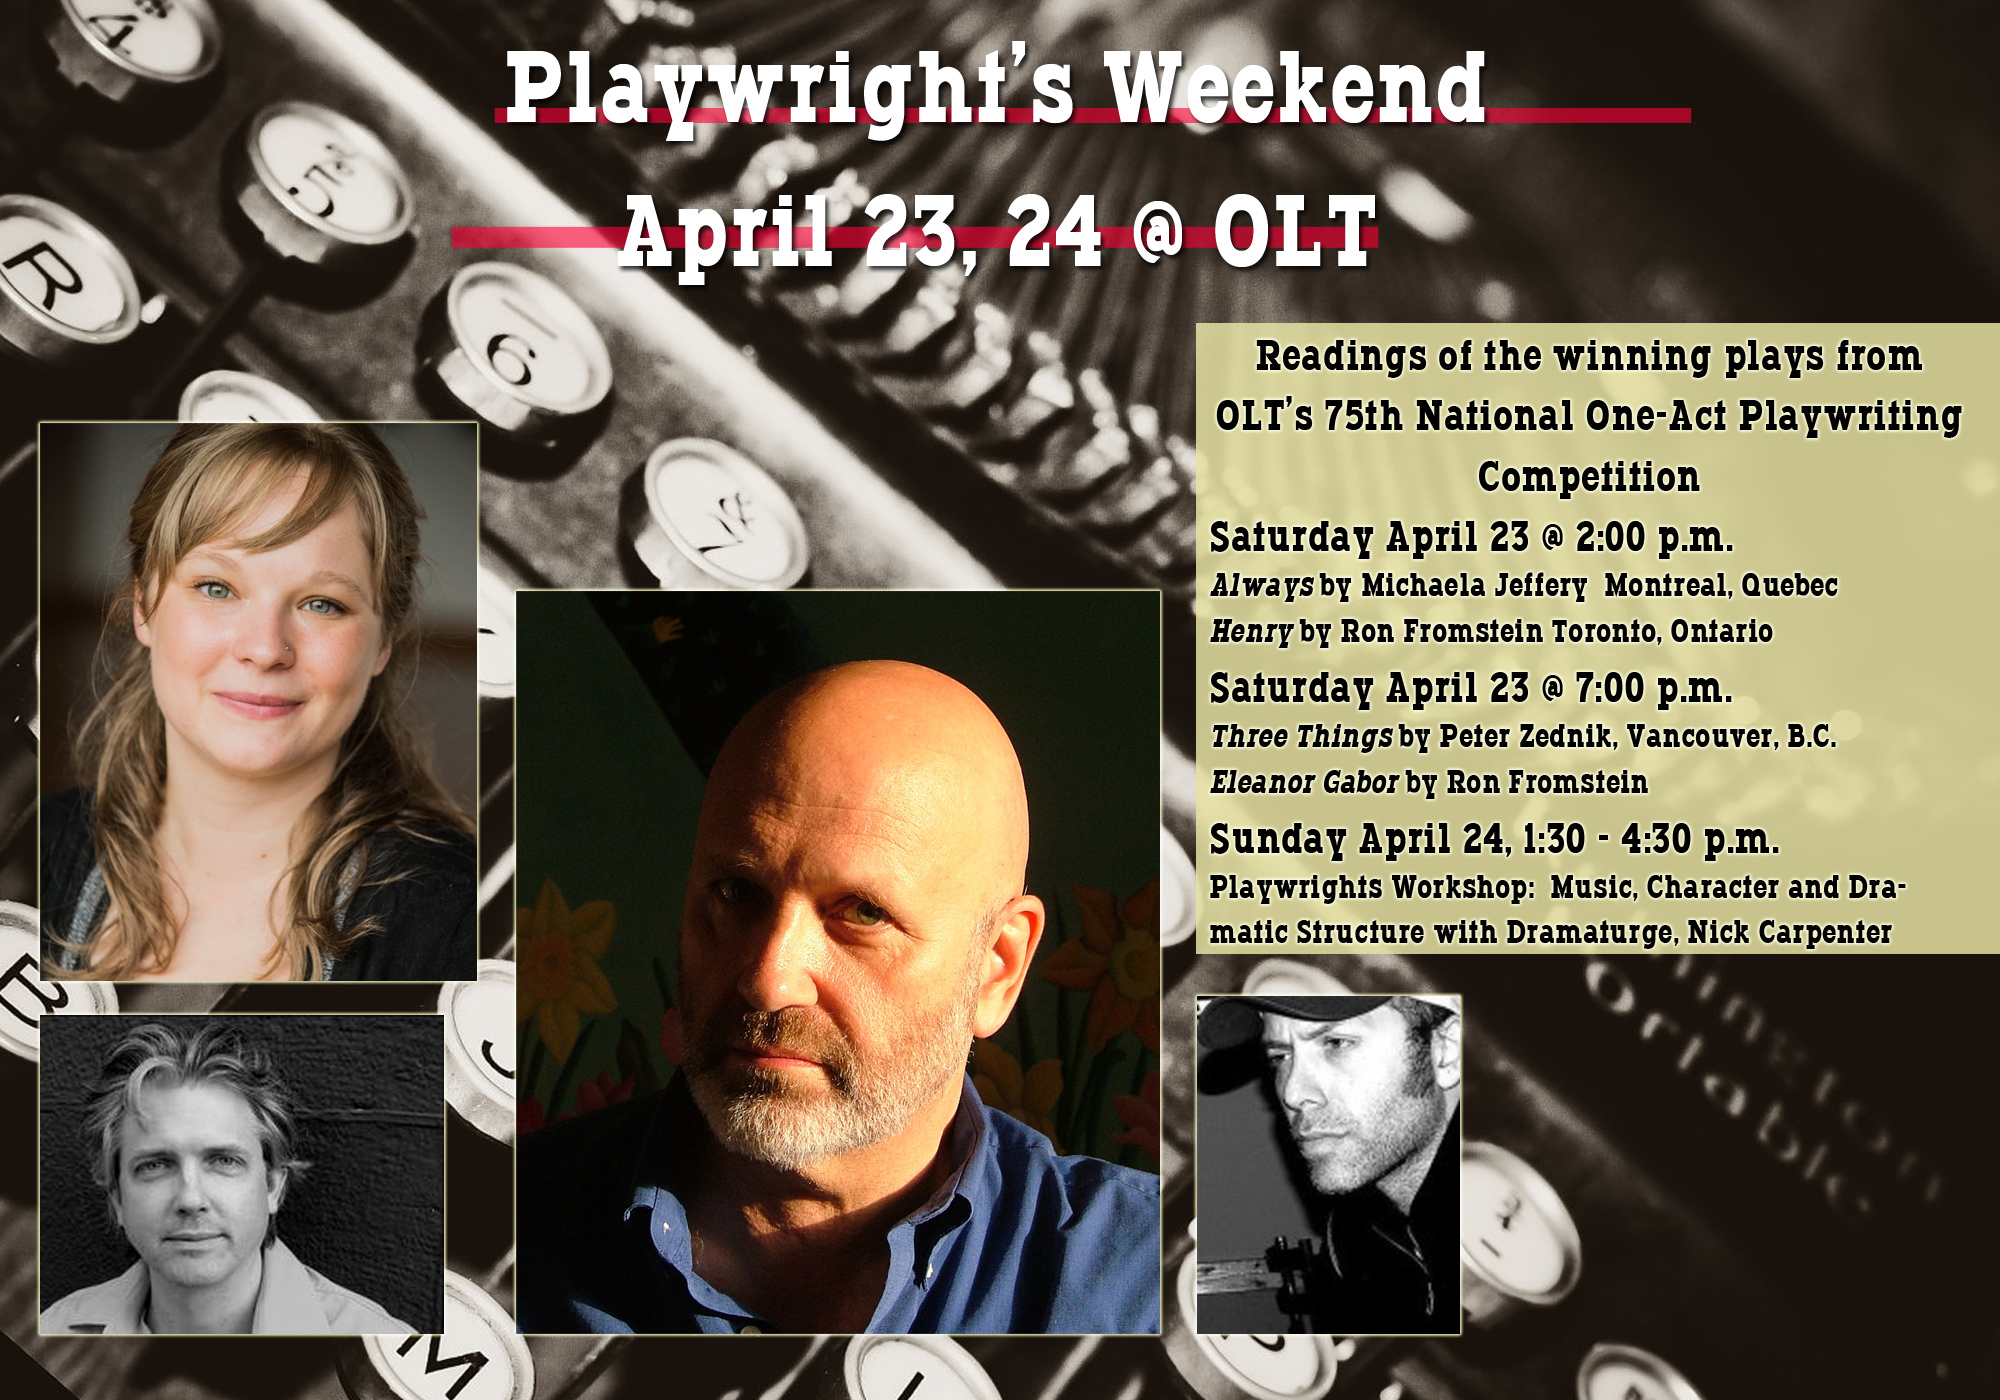 Playwrights Weekend April 23, 24 - Ottawa Little Theatre